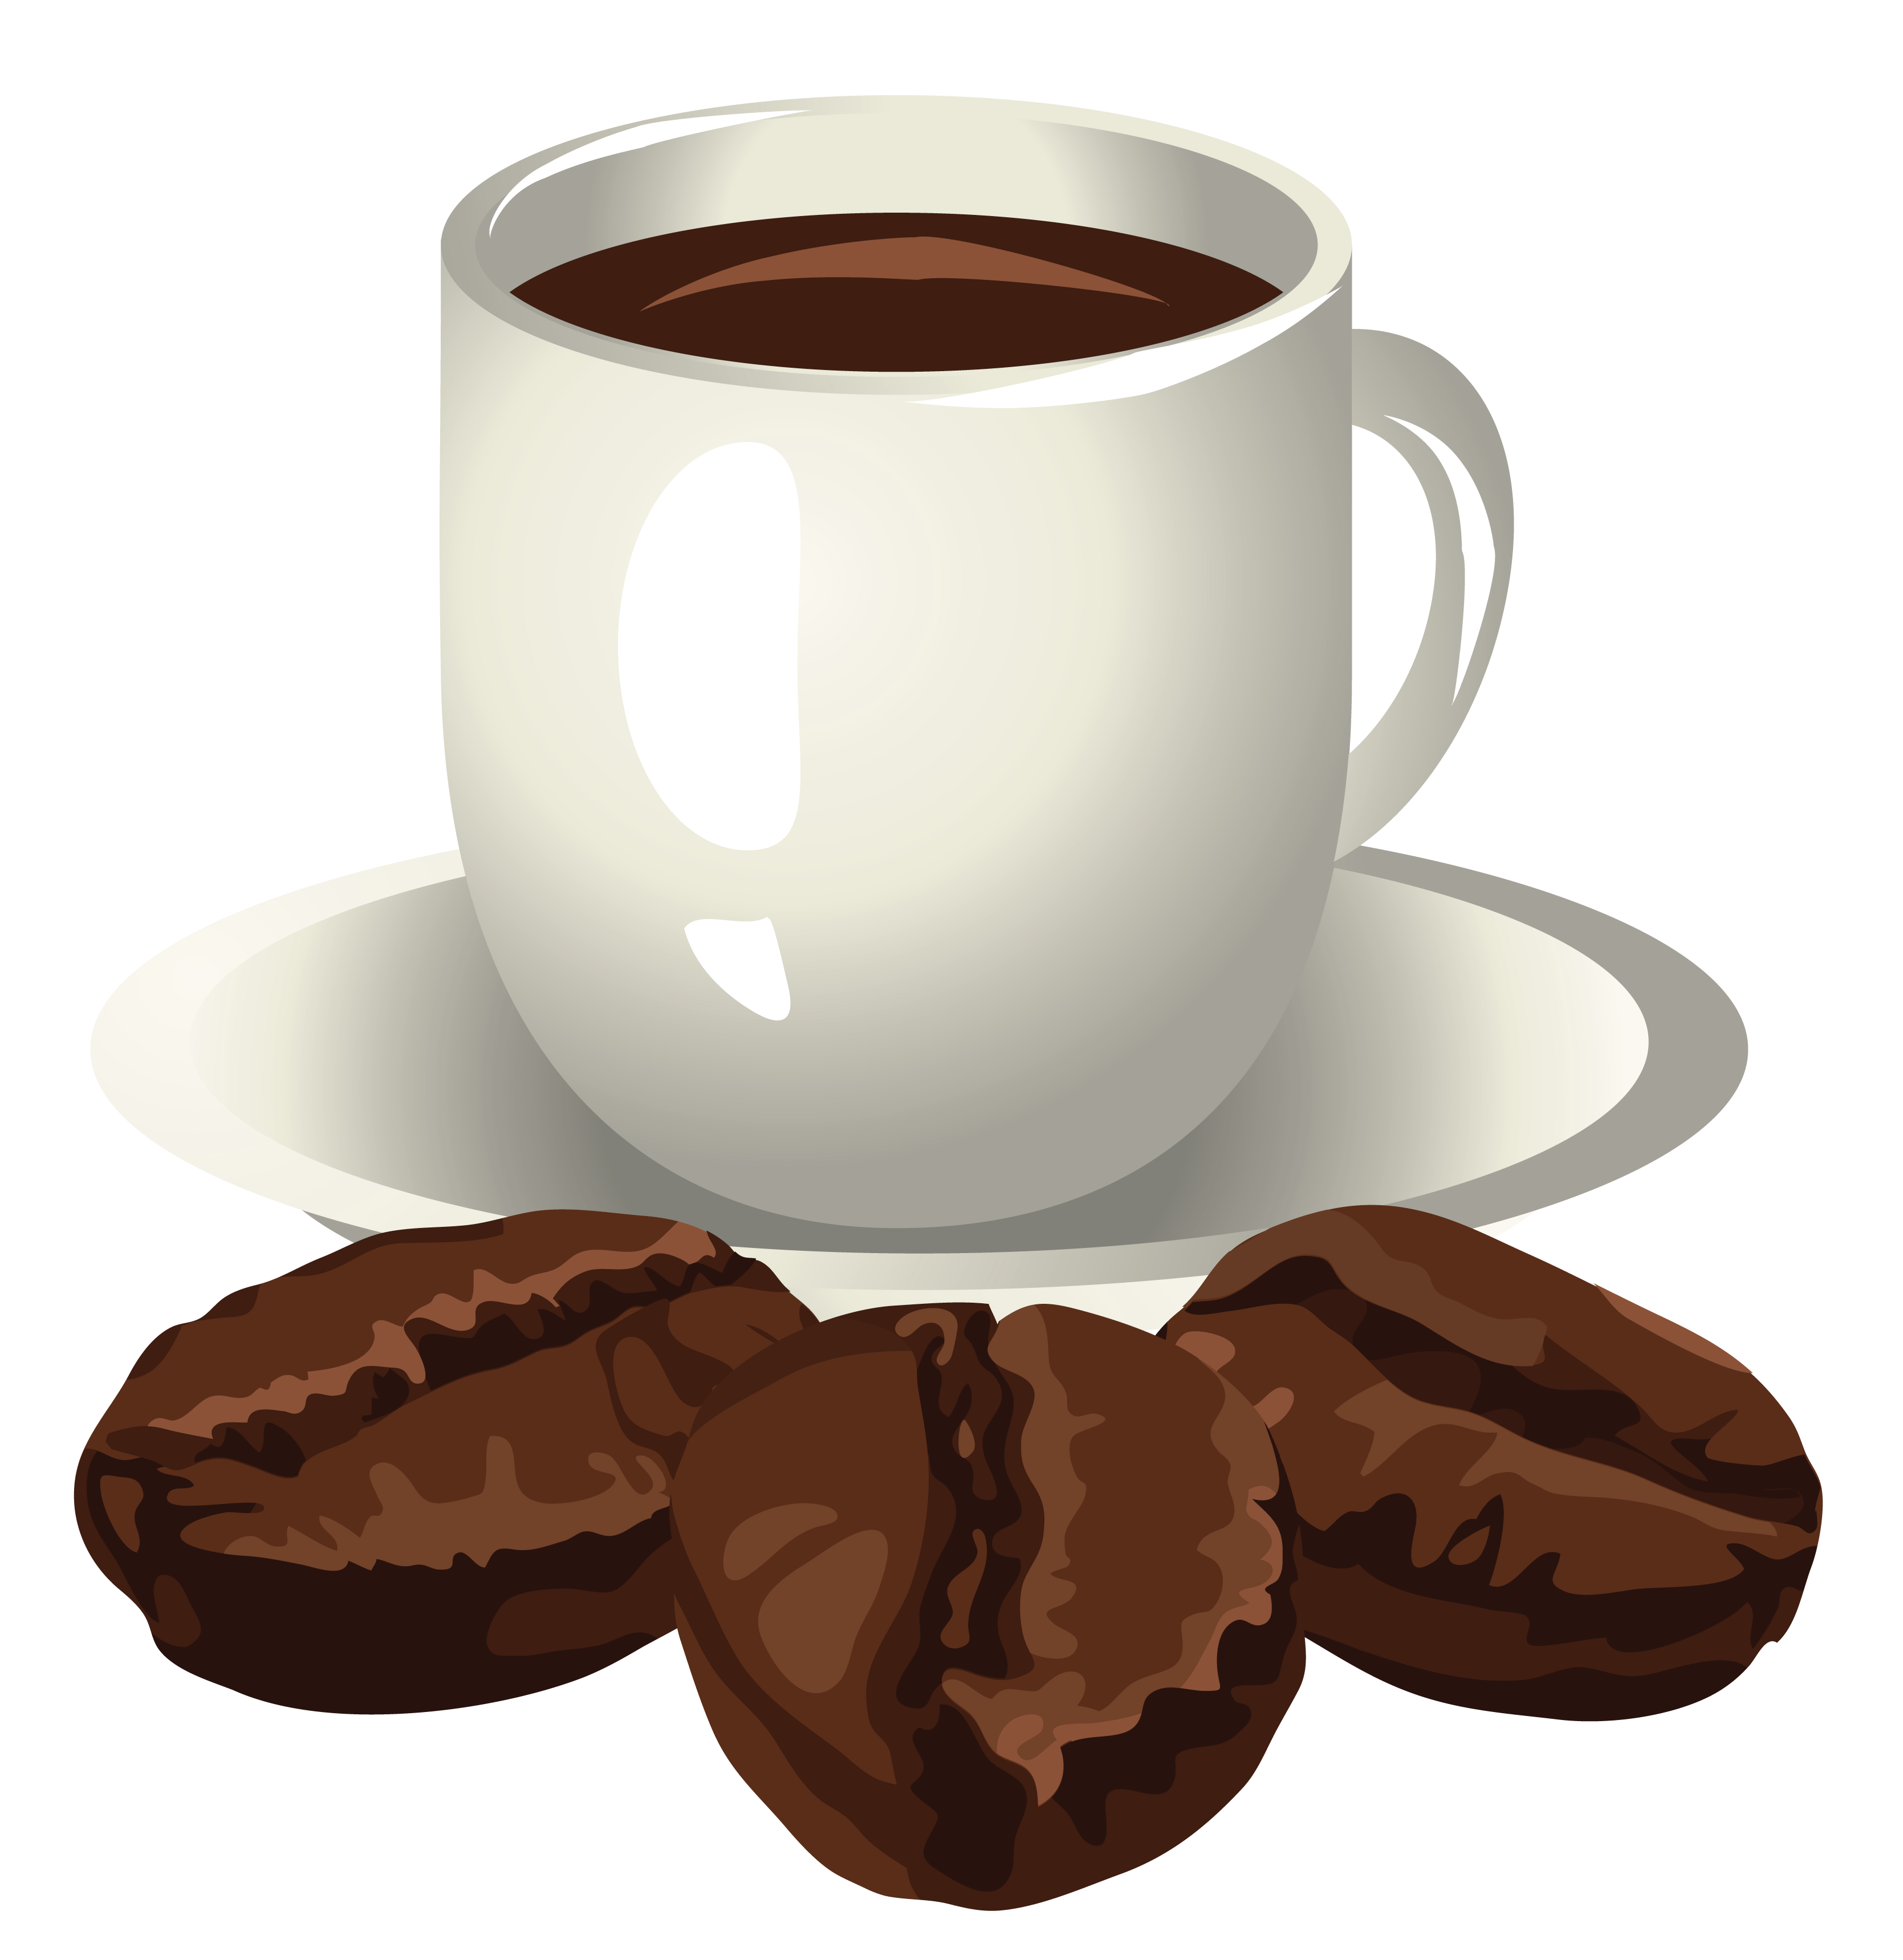 Cup png gallery yopriceville. Clipart coffee